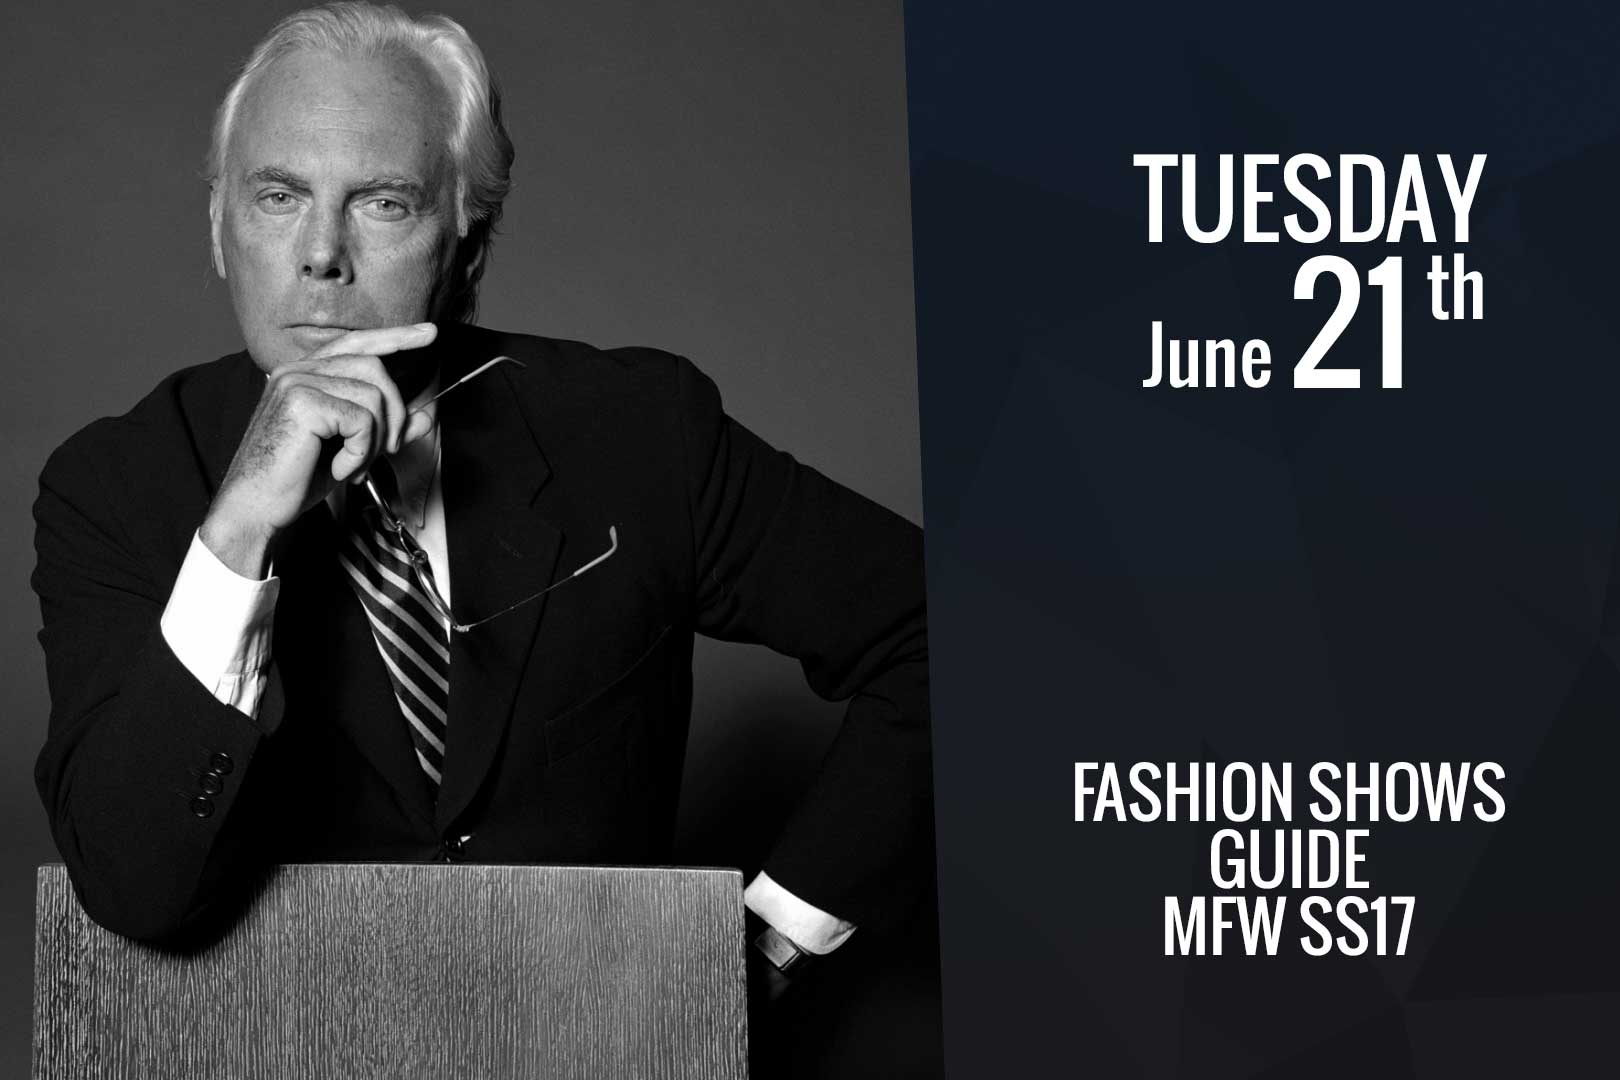 Tuesday June 21st: fashion shows guide